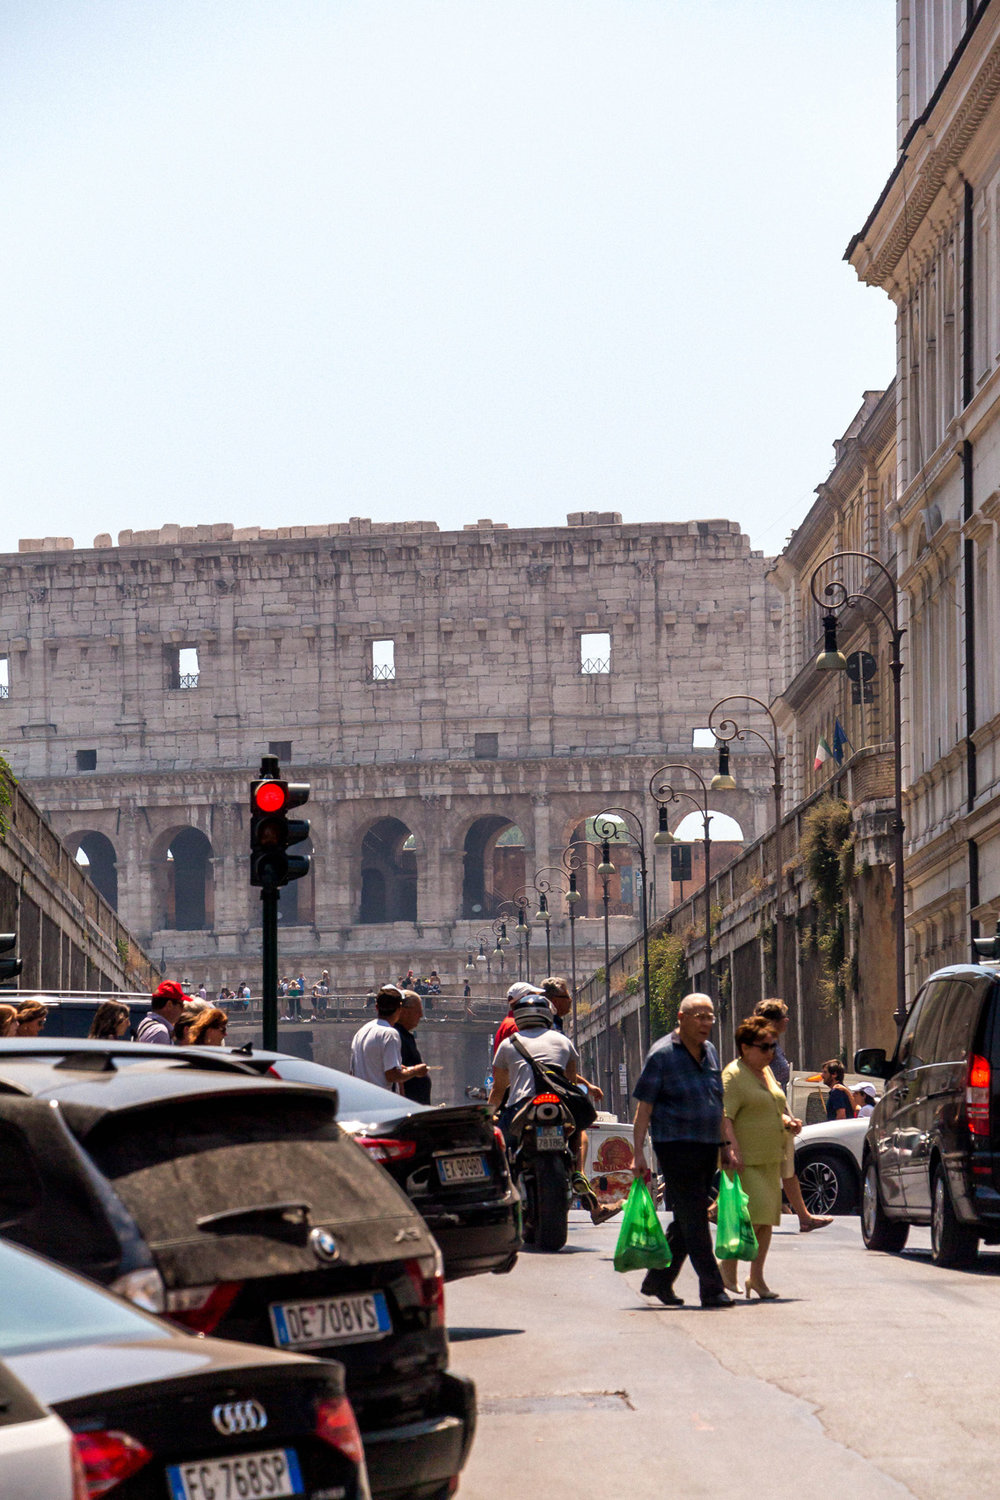 View of the Colosseum, Rome